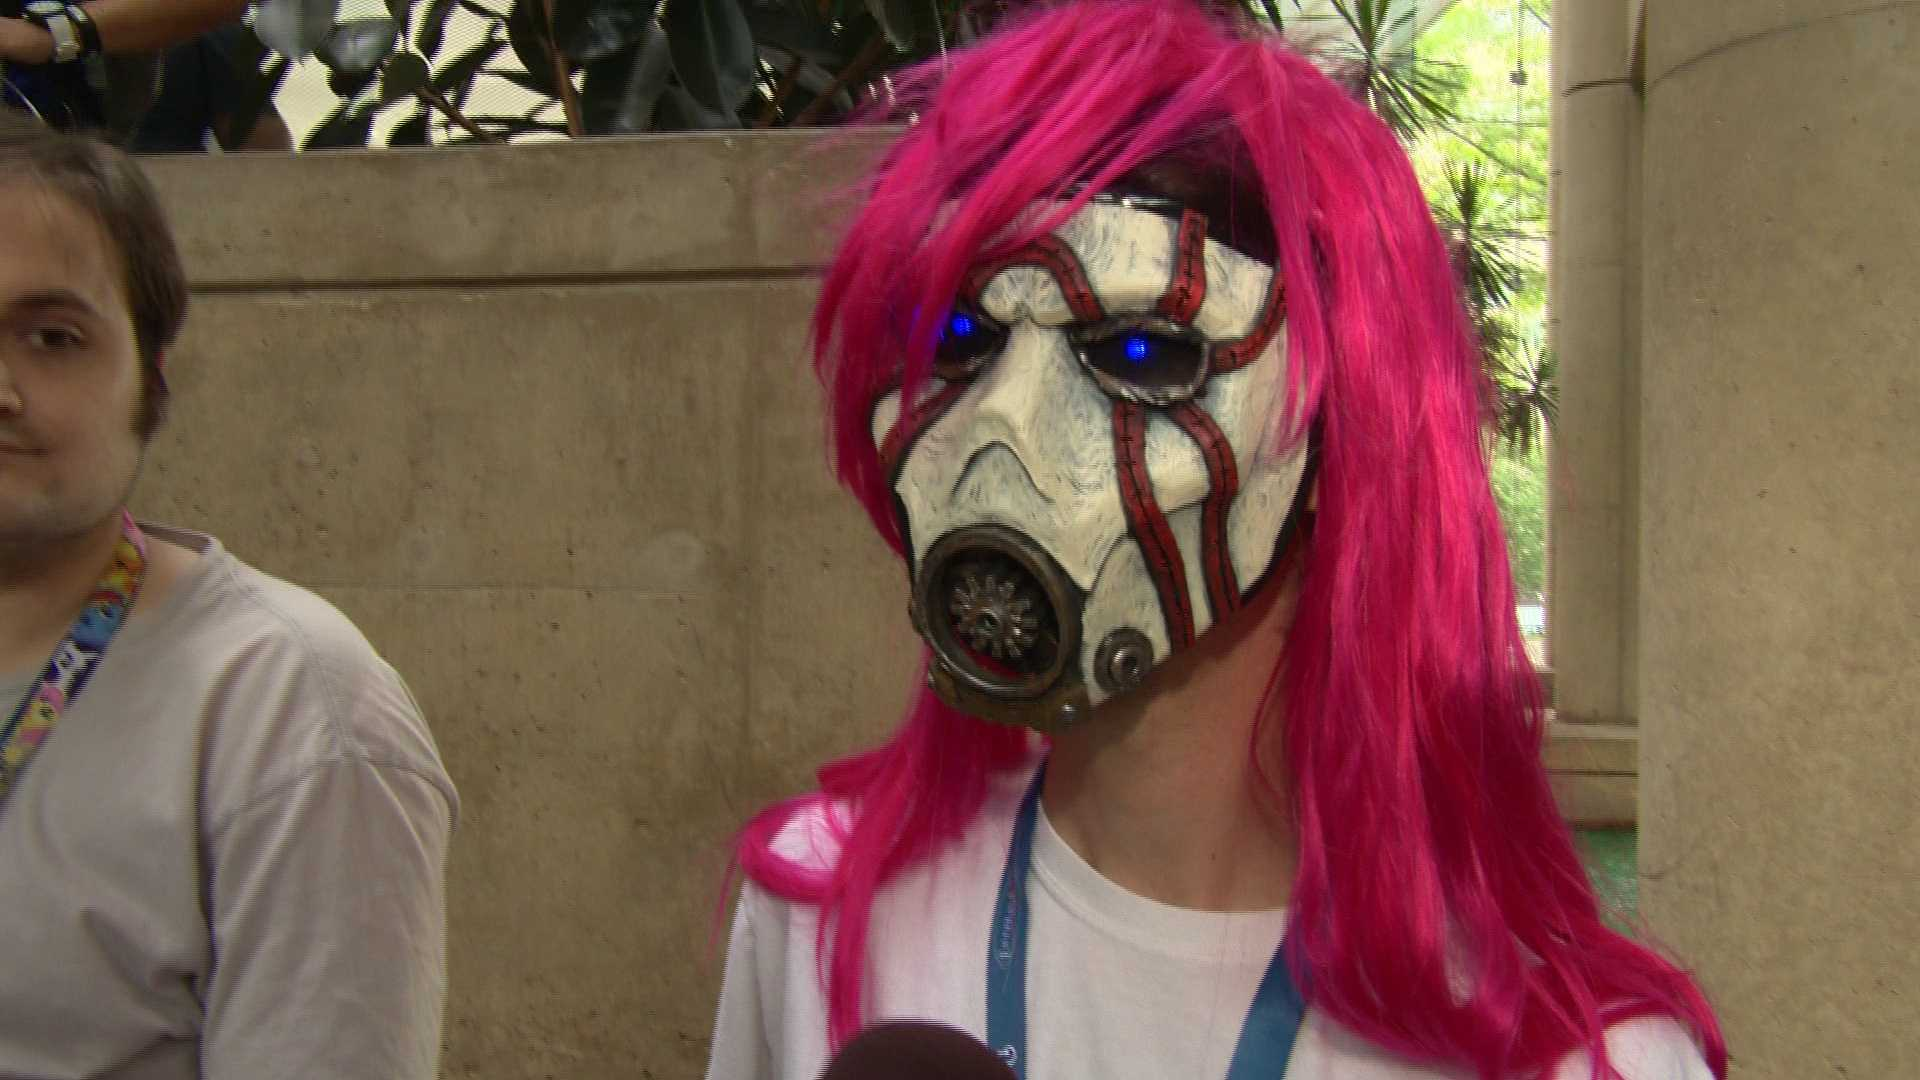 Bronycon kicked off Friday morning at the Baltimore Convention Center.